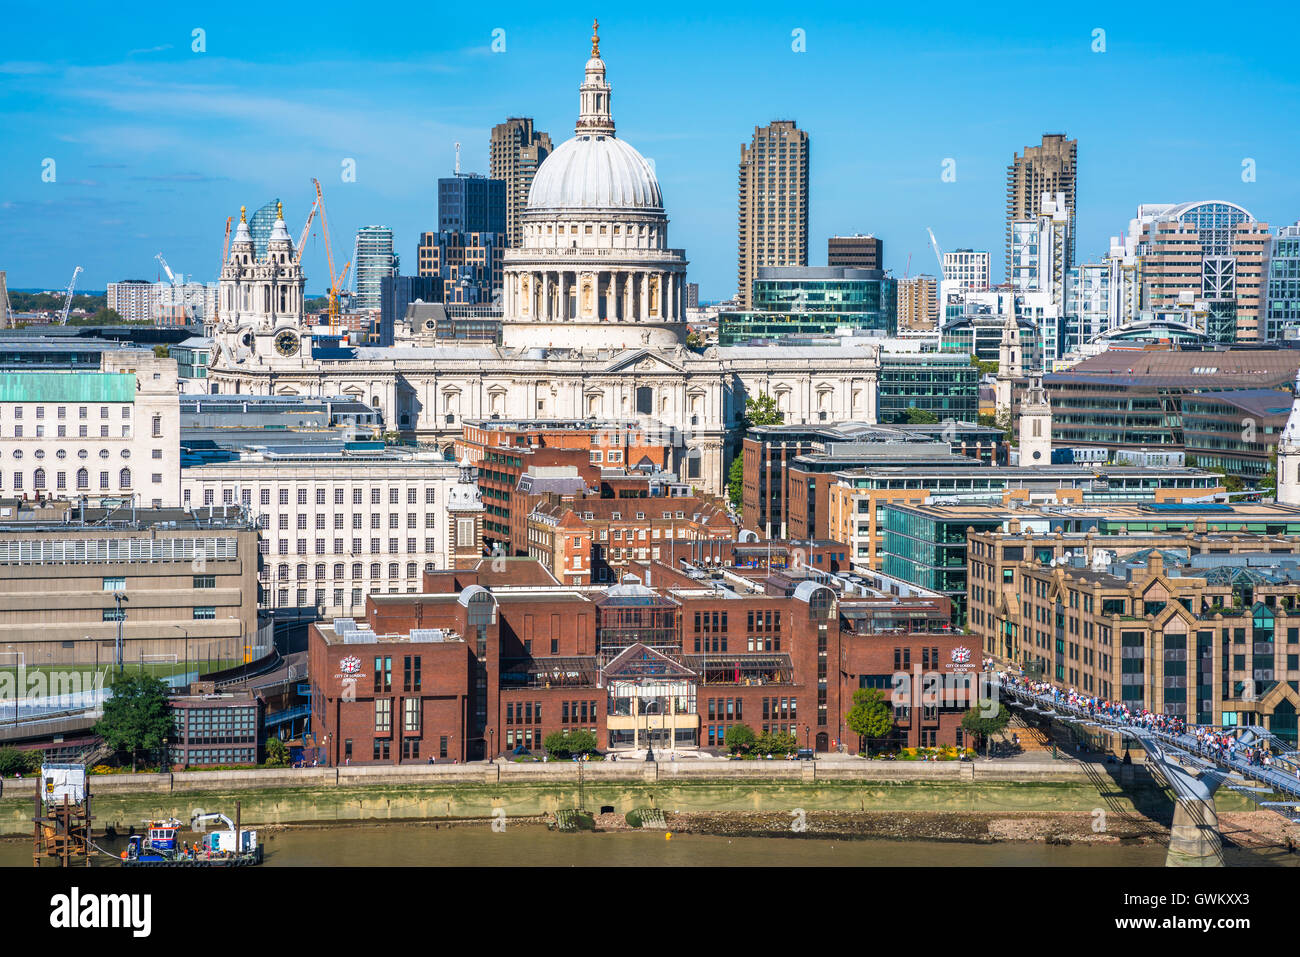 LONDON UK - SEPTEMBER 11, 2016: Panoramic aerial view of The City of London with St. Paul's cathedral - Stock Image